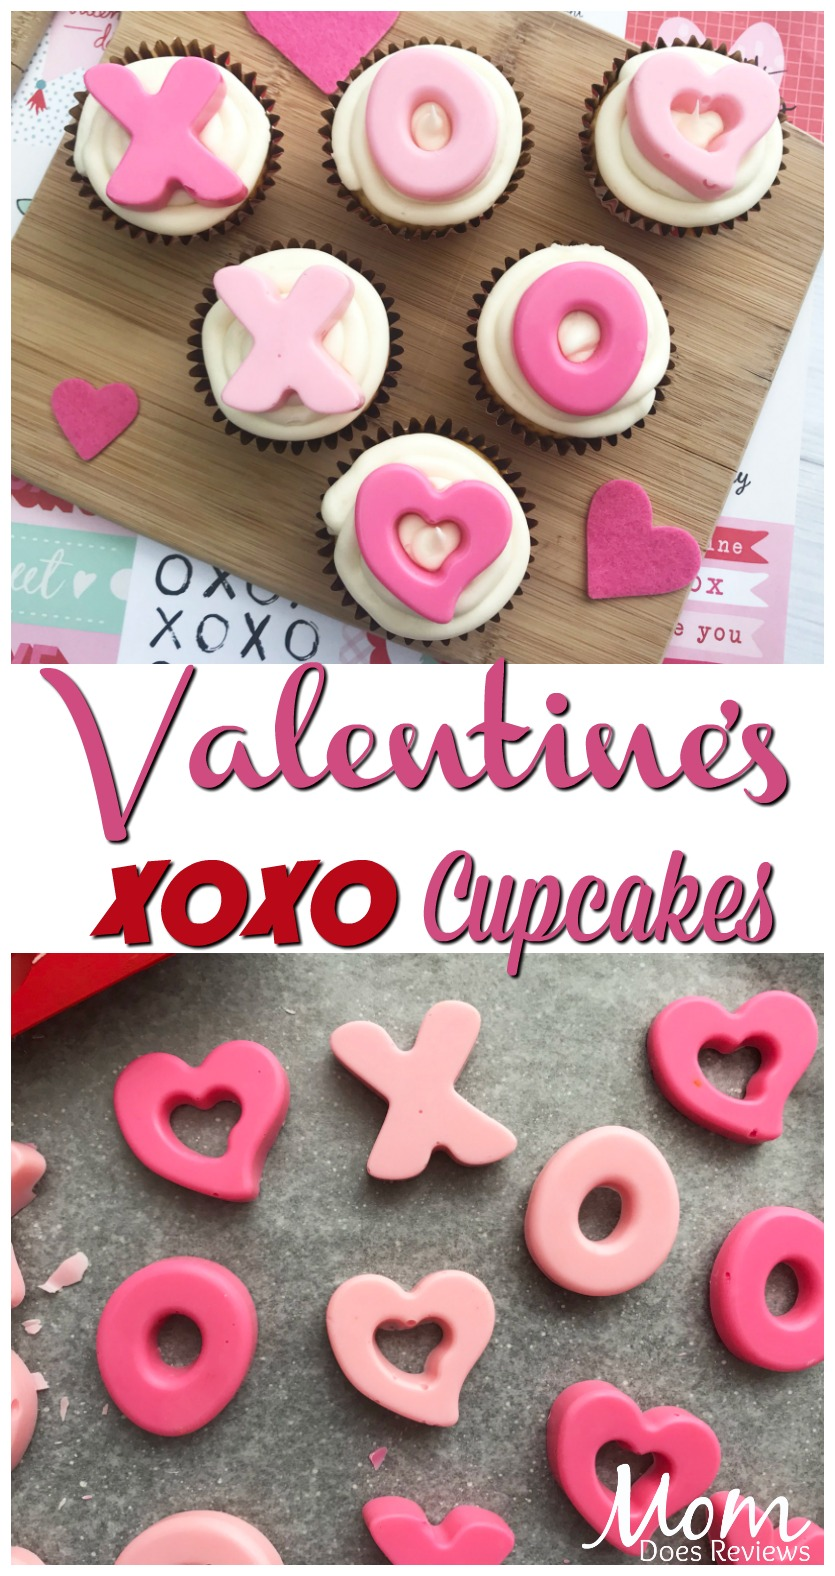 Valentine Hugs and Kisses Cupcakes #sweets #recipes #valentinesday #hugs #love